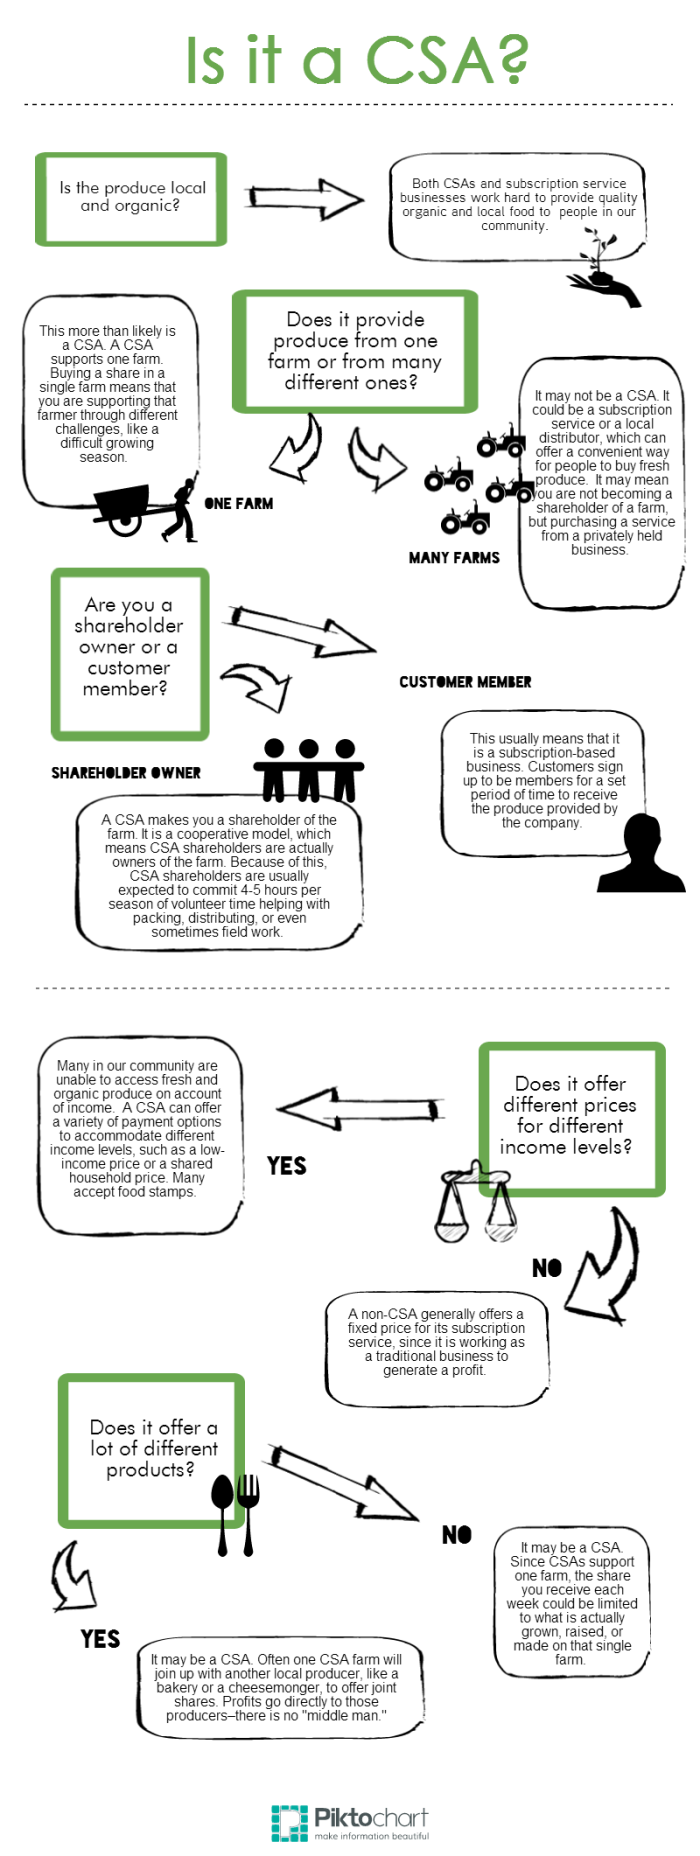 IS-IT-A-CSA-infographic-FINAL2